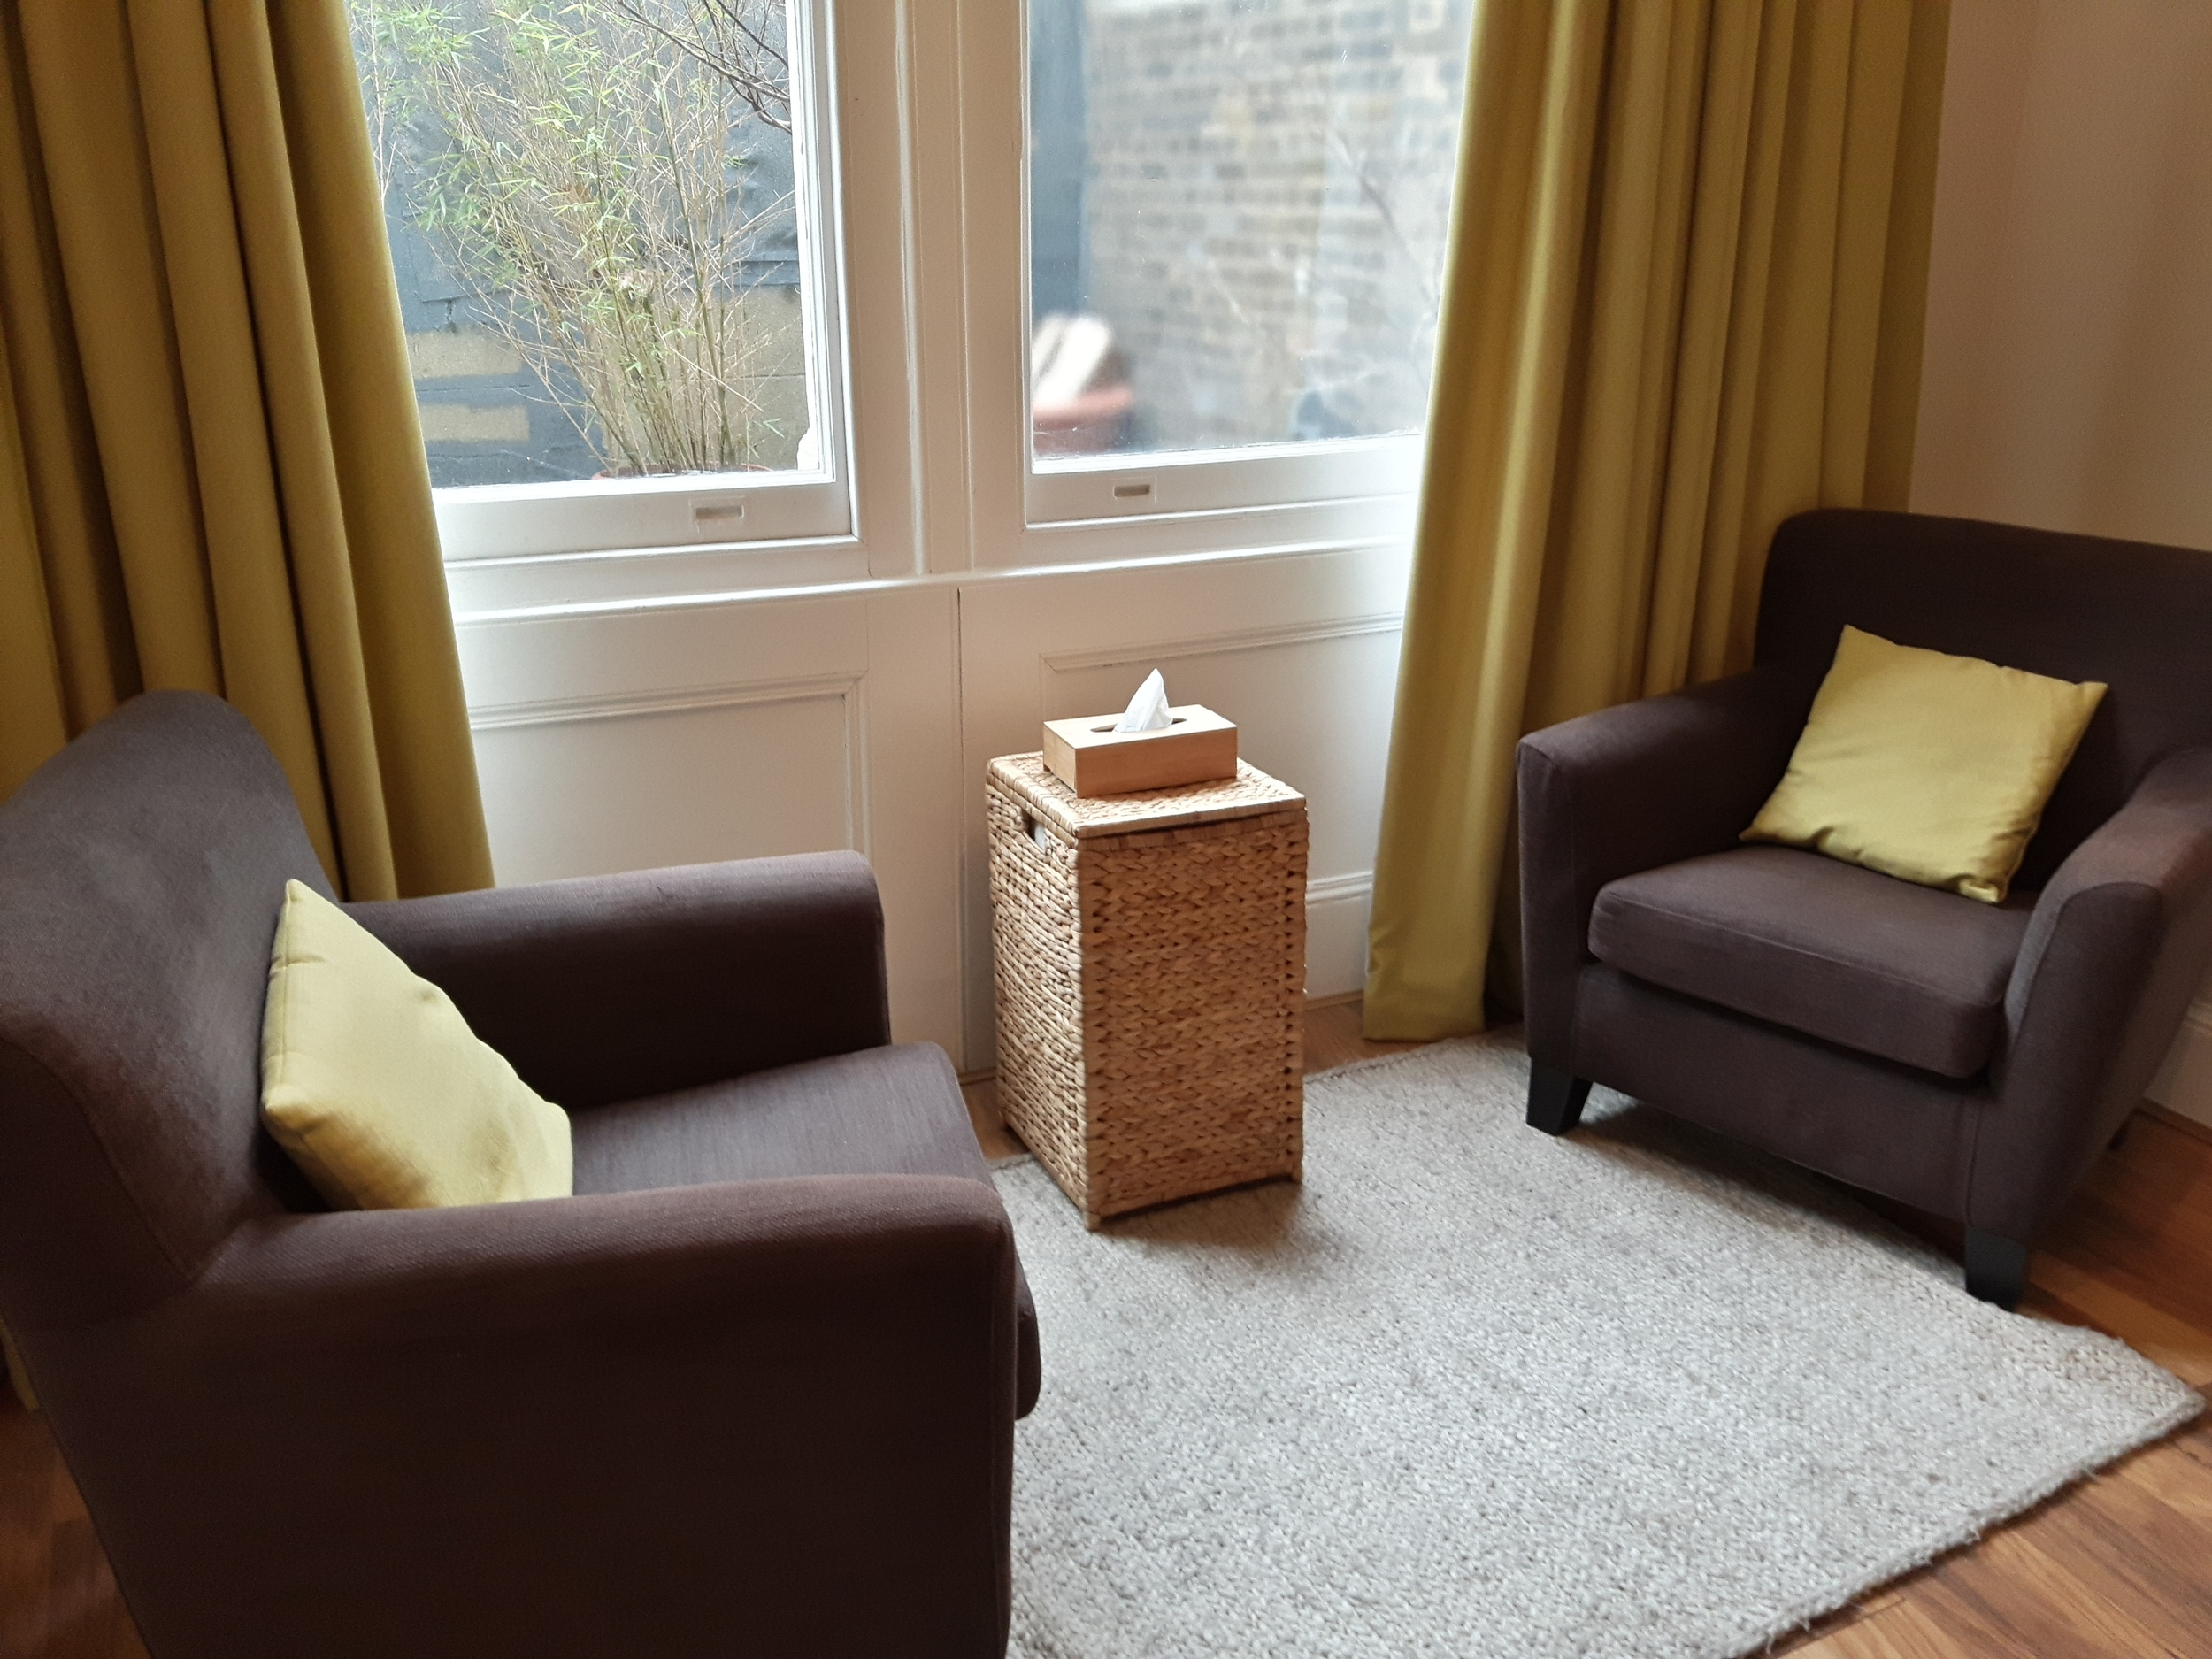 One of our counselling rooms at Holborn